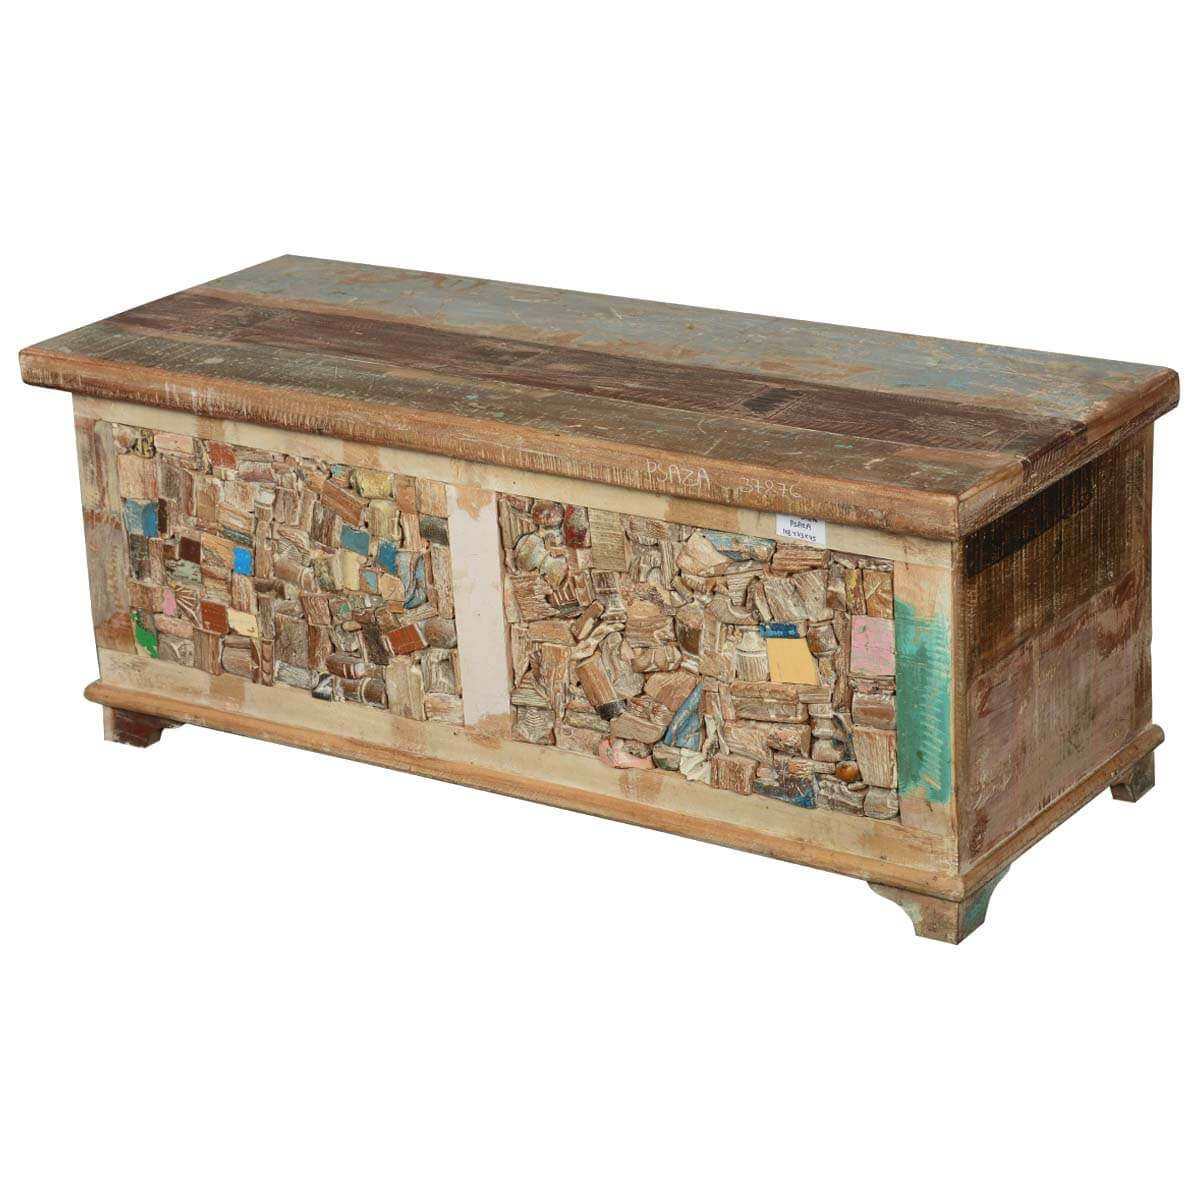 Rocky Mosaic Reclaimed Wood Standing Coffee Table Chest